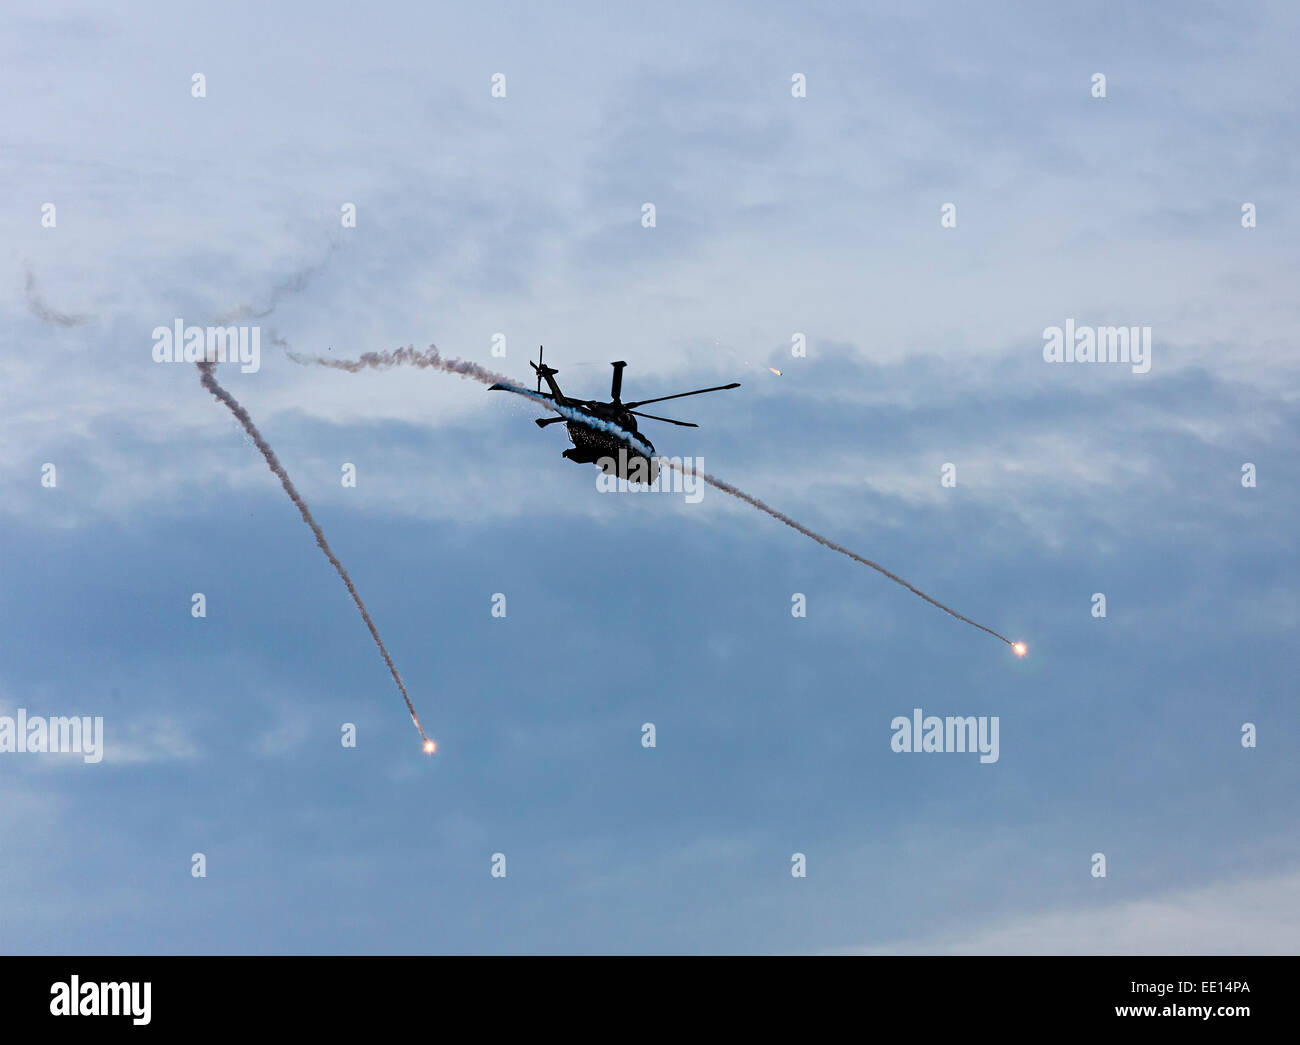 Military helicopter firing flares during training exercise, Donna Nook, Lincolnshire, England, UK - Stock Image